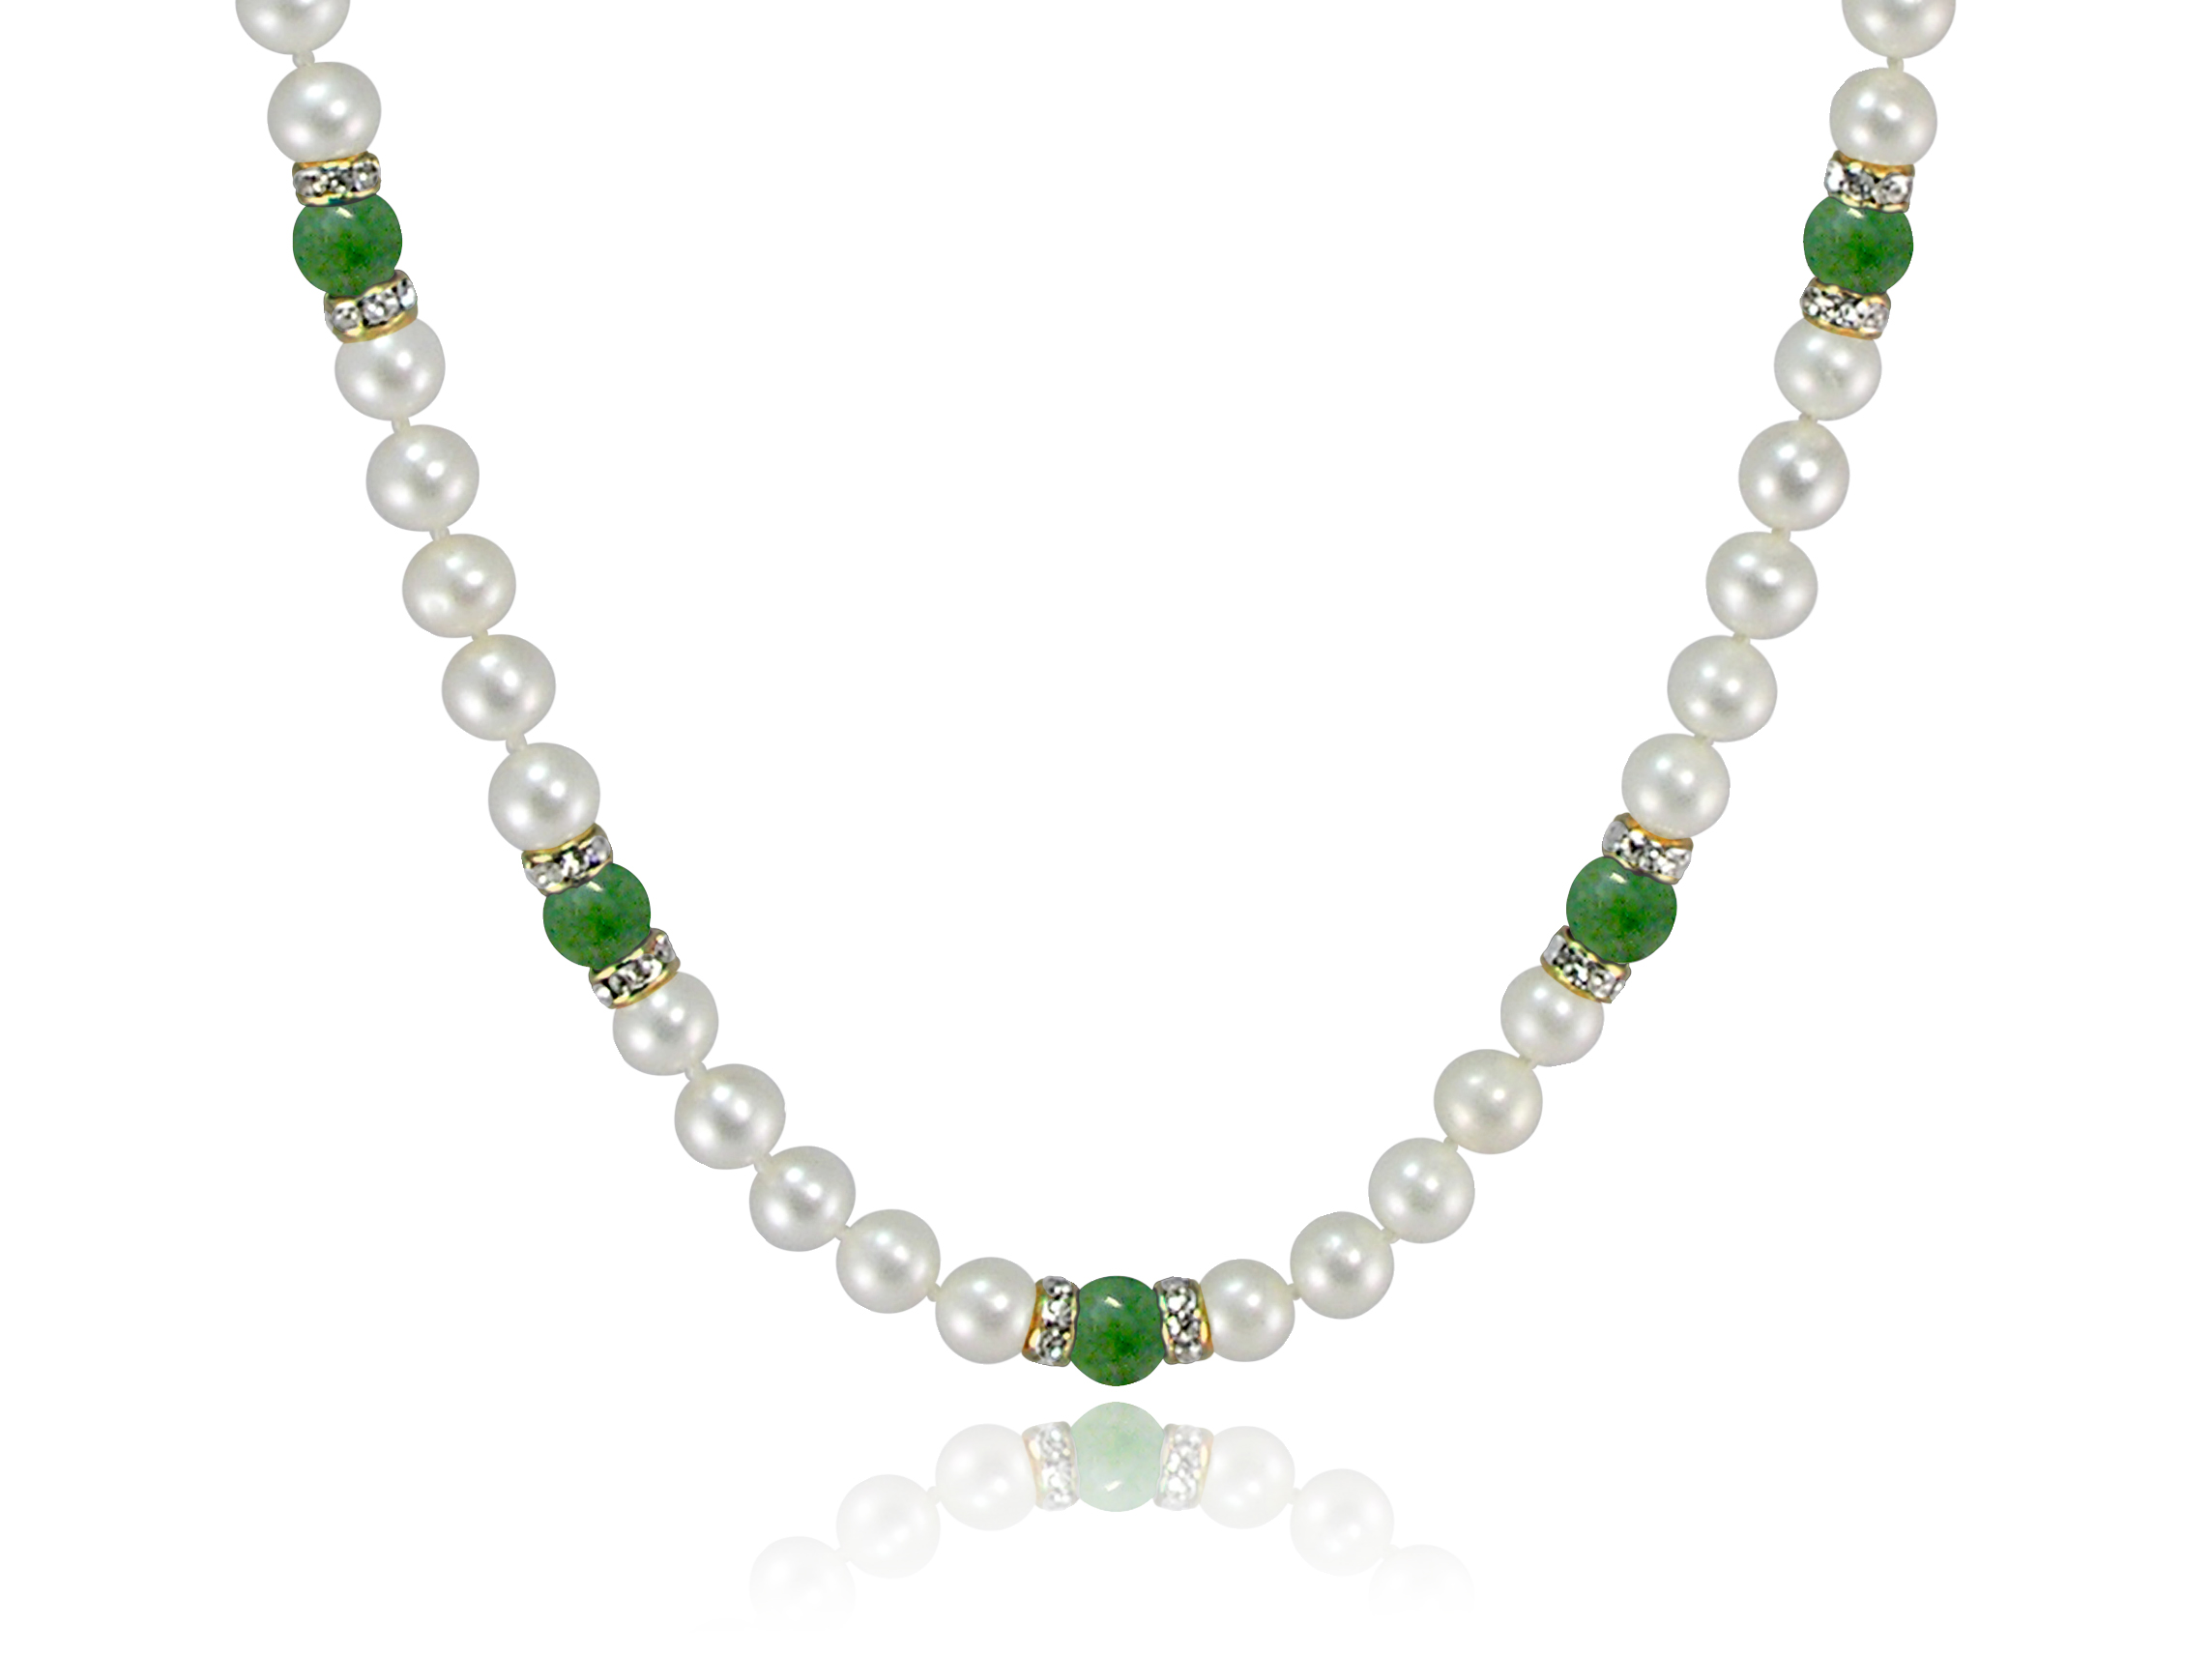 copy of chinese nephrite jade necklace beads paradise products necklacae charm